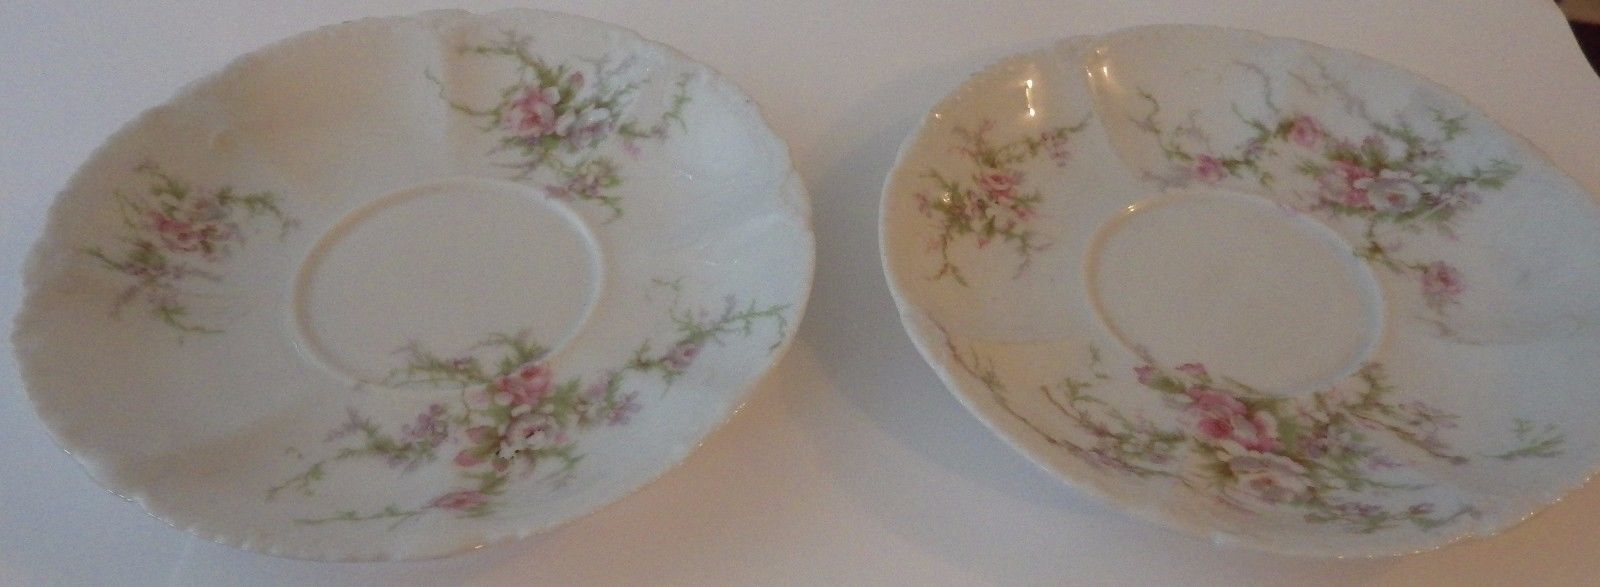 Price Reduced 2 Saucers - Antique Theodore Haviland Limoges France W - Wanamaker